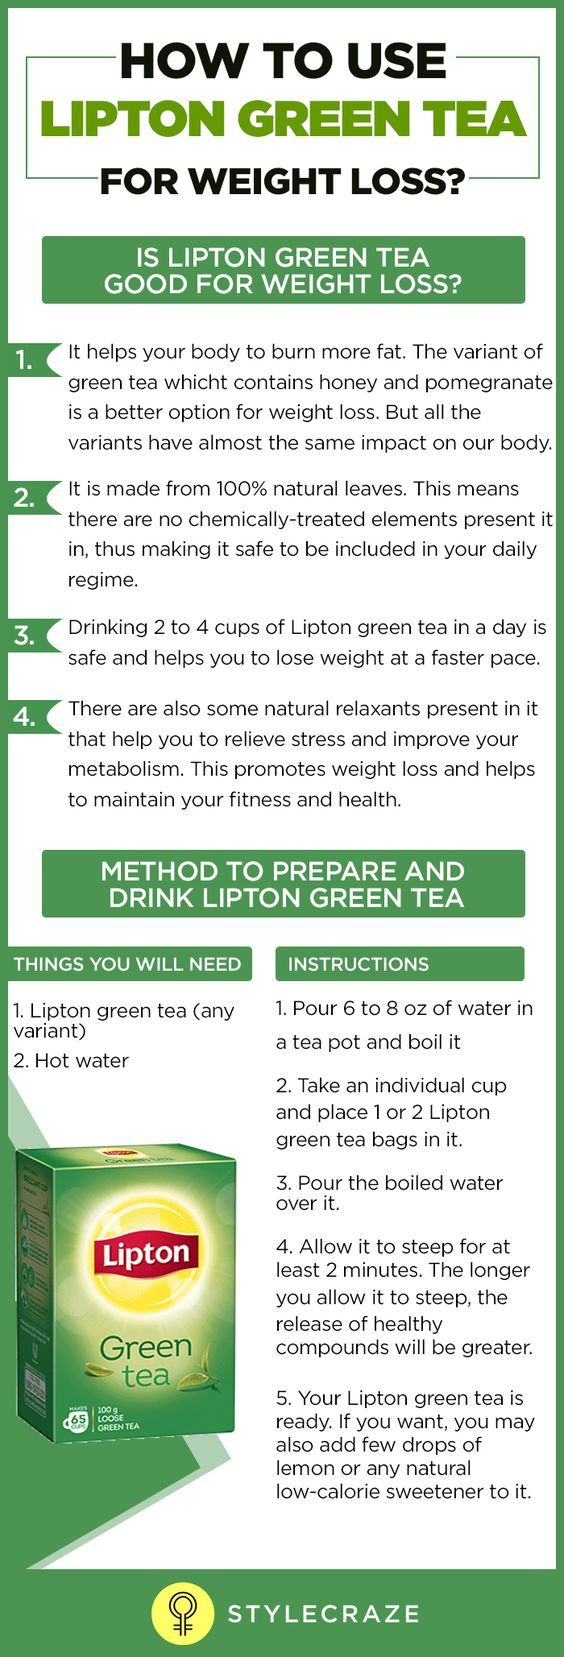 Green tea is the world's healthiest drink. And Lipton green tea is one of the most trusted green tea brands in the world. -- Be sure to check out this awesome article.